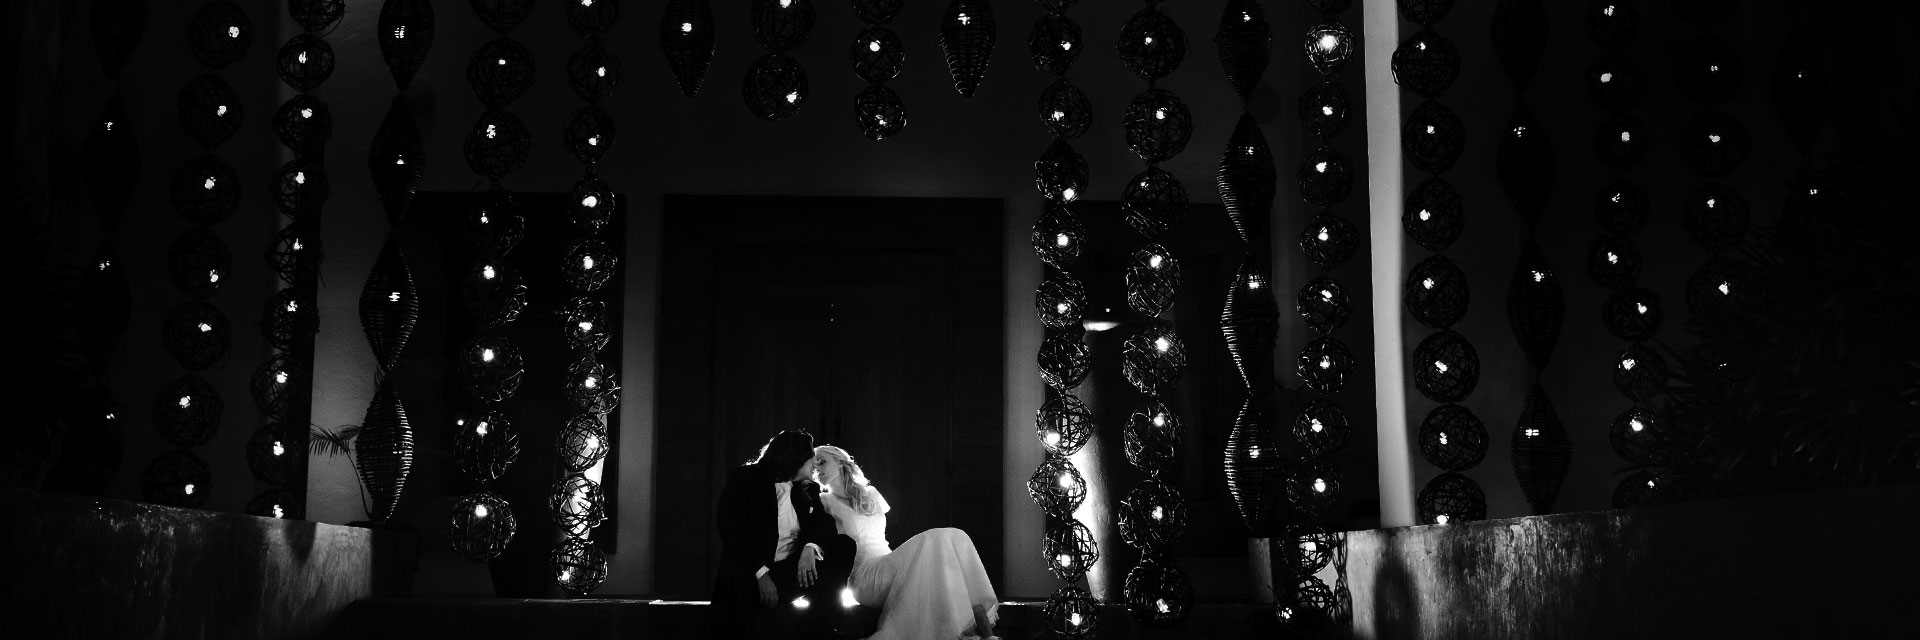 Black and white shot of the wedding couple kissing on the stairs